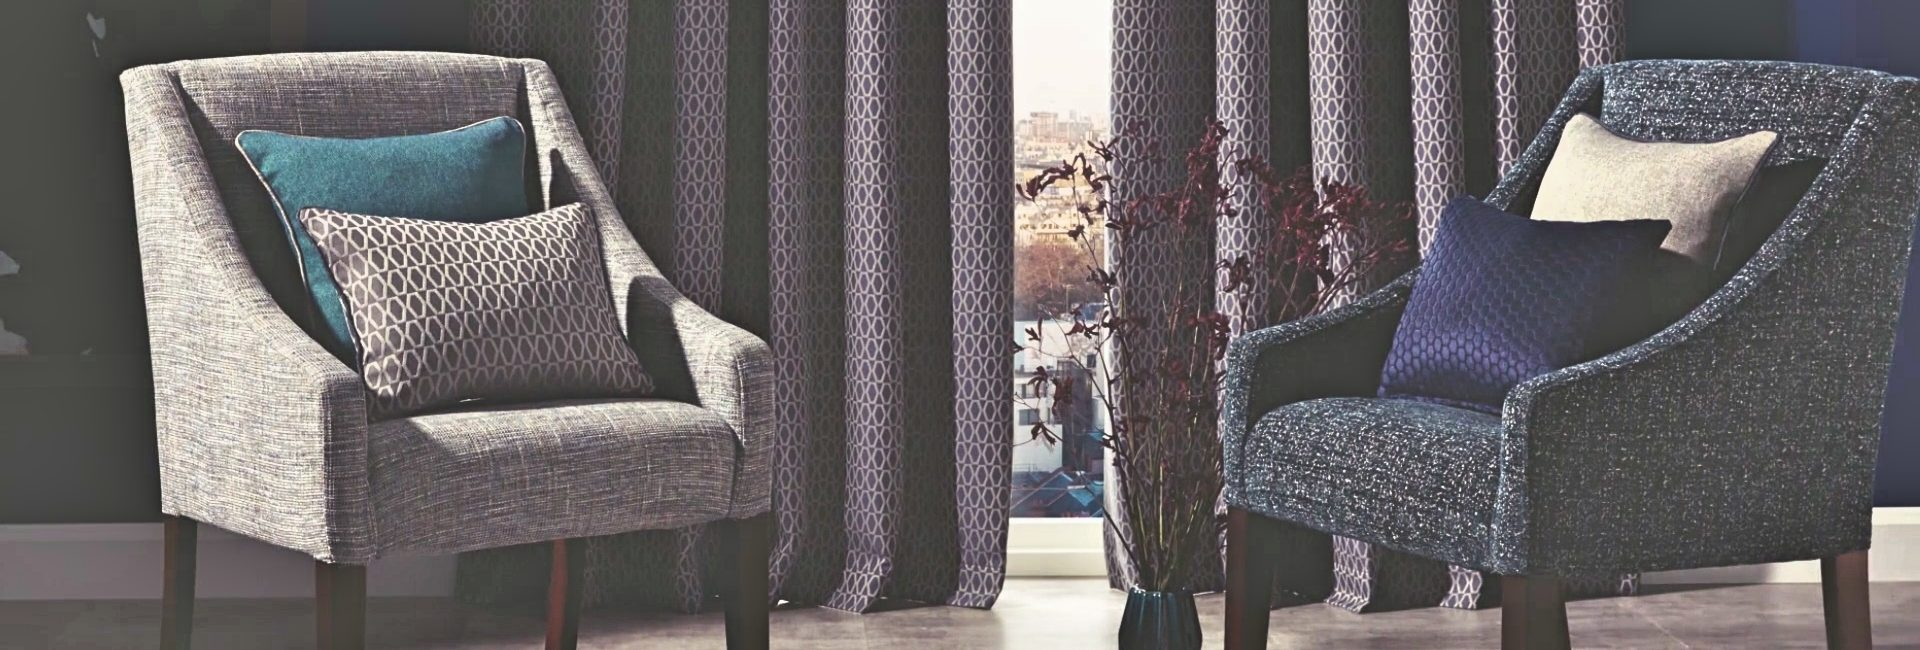 iliv fabric collection shown on chairs, cushions and curtains - available from Fabric Gallery and Interiors in Dunnington, York